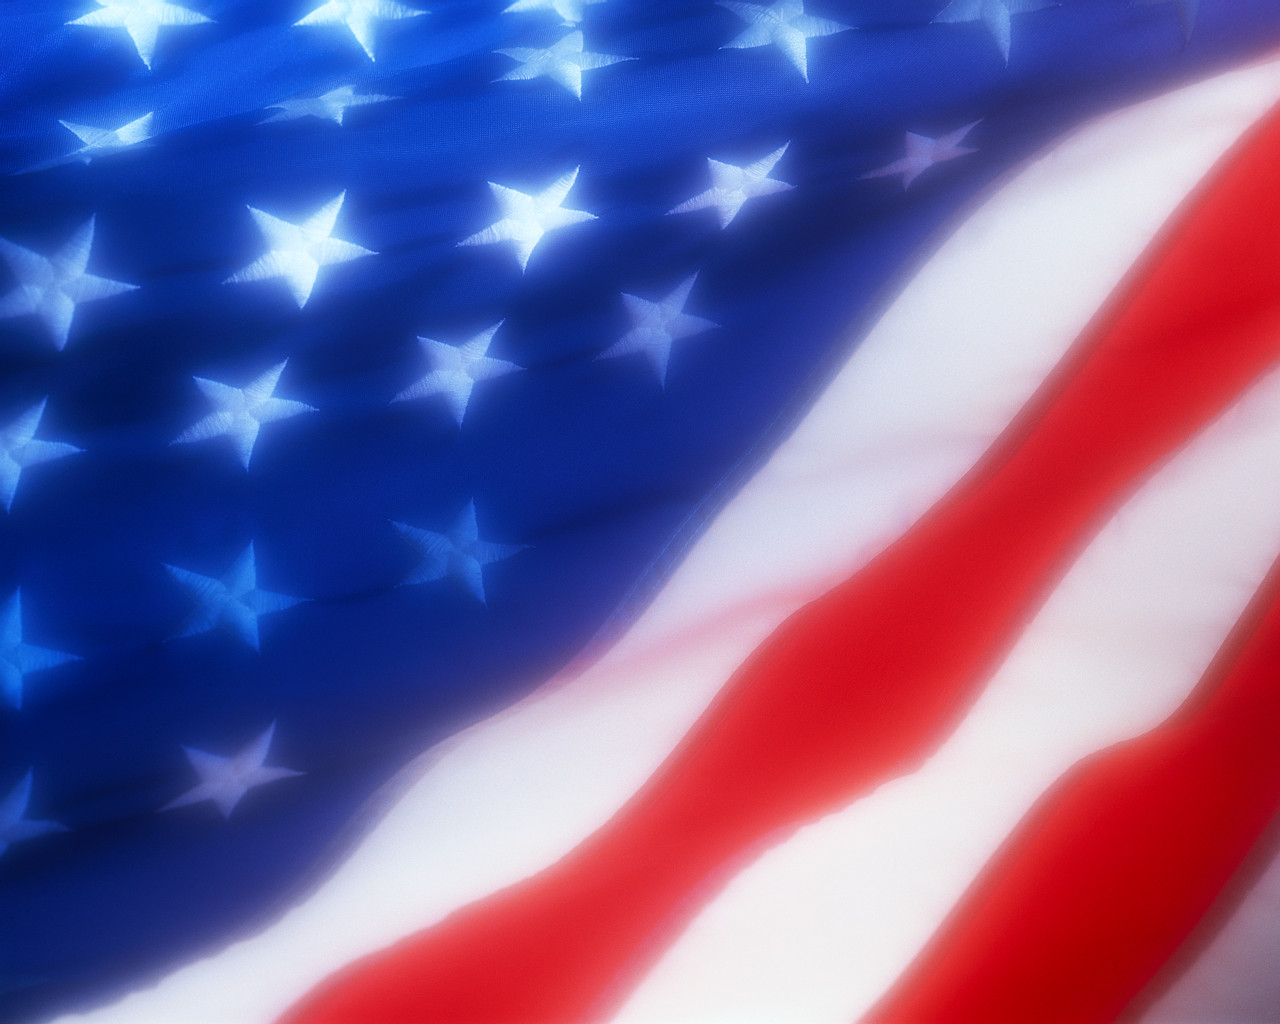 ANNUAL MEMORIAL DAY PARADE, Monday, May 25th @ 9:30 a.m.